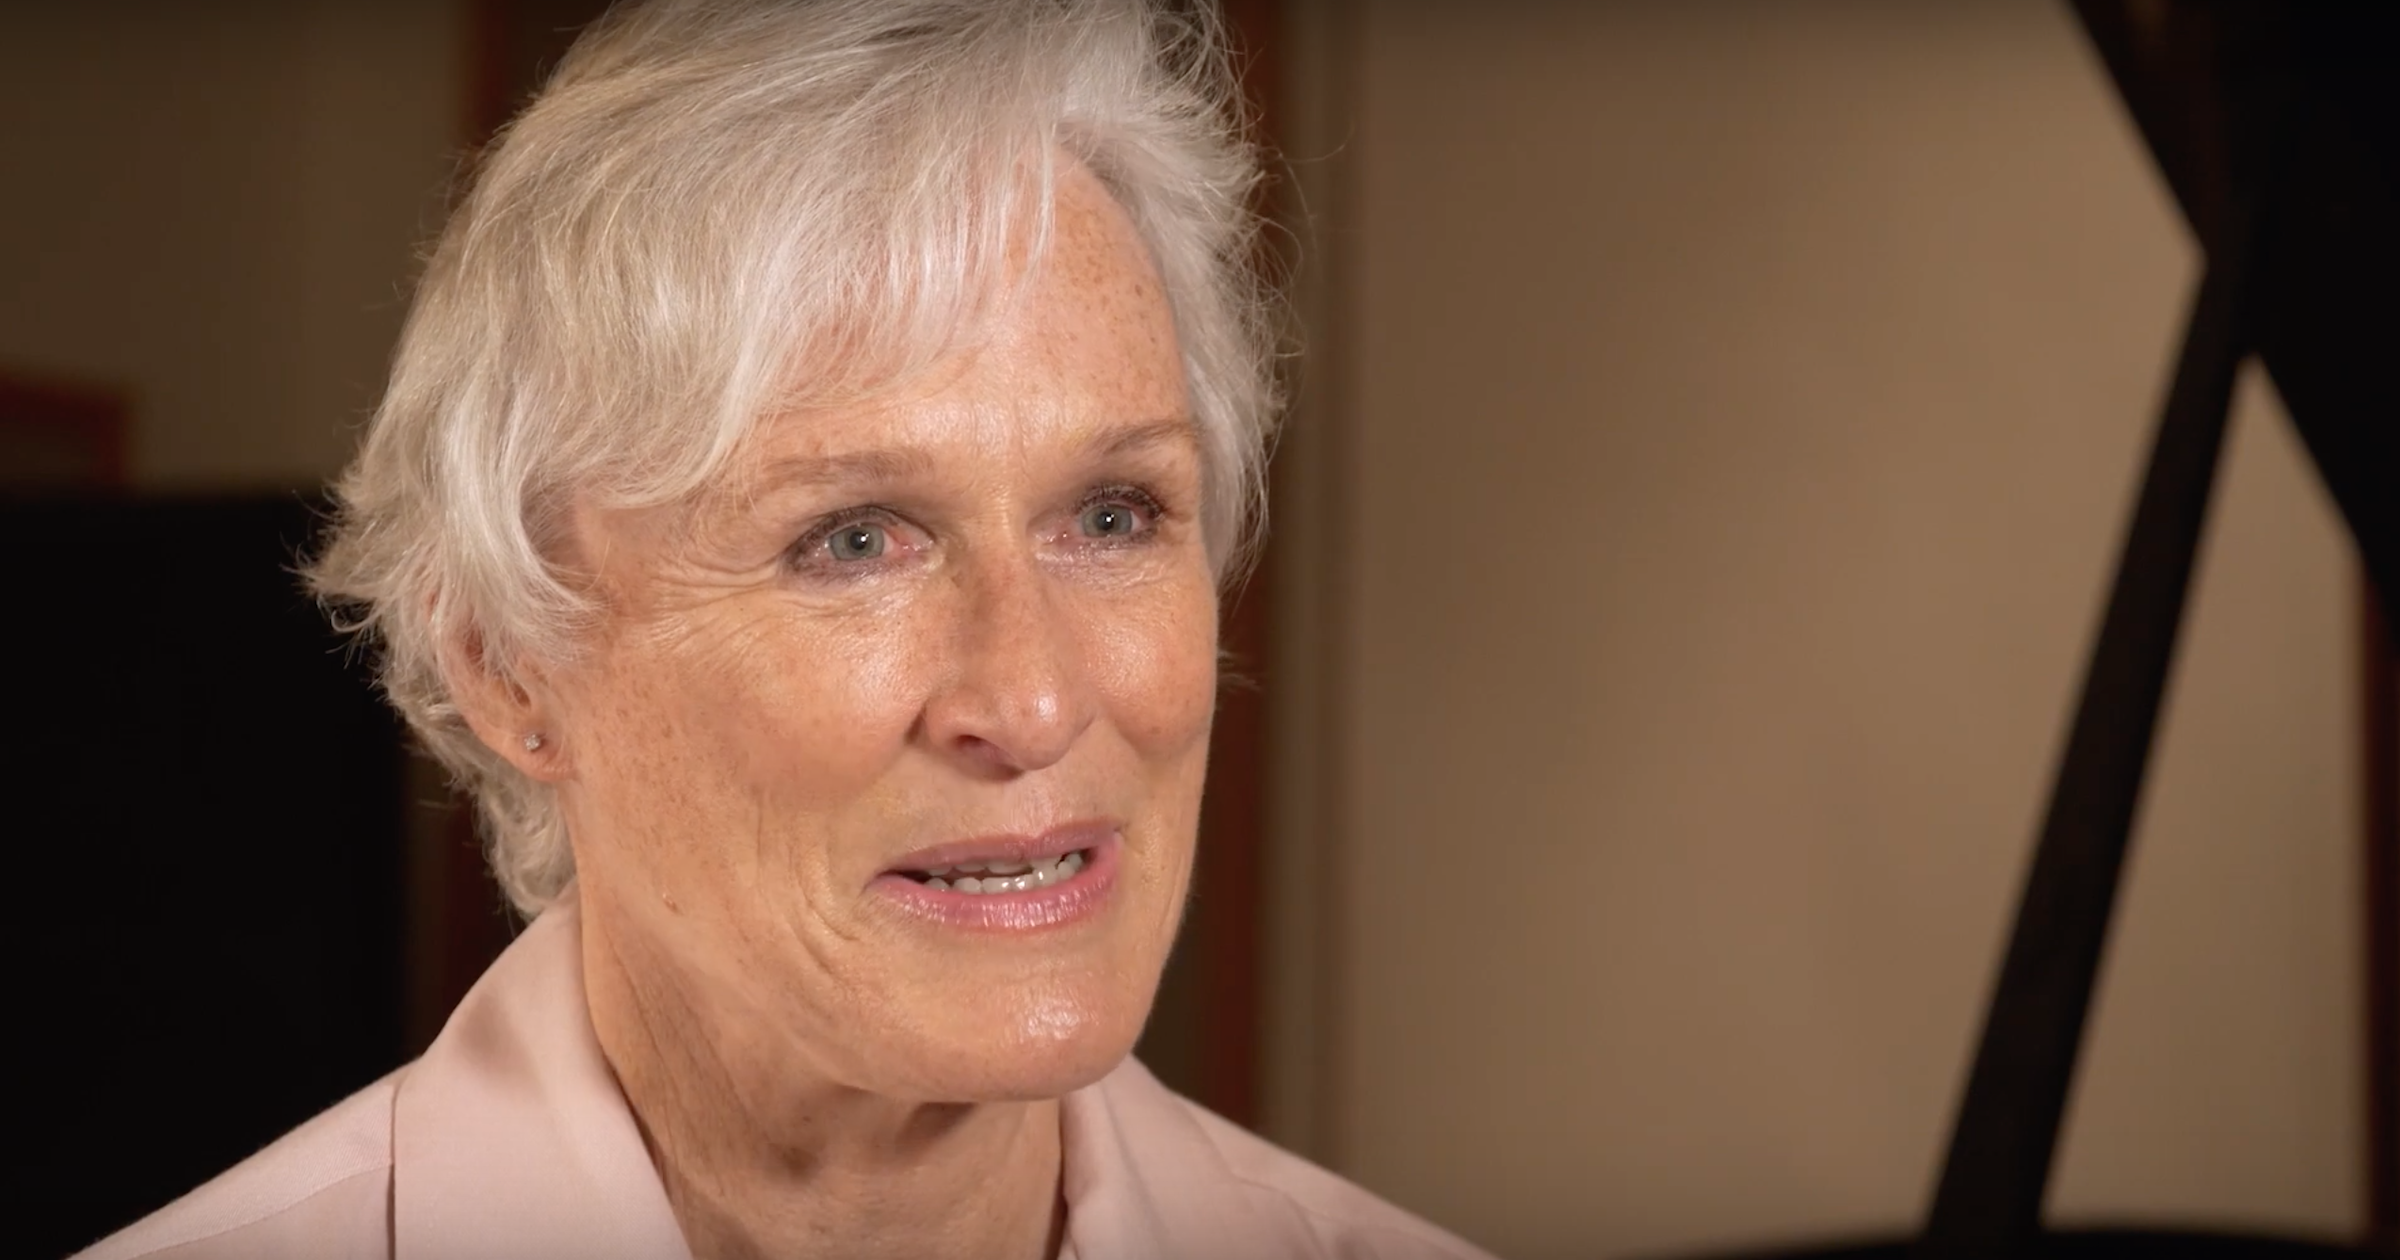 Her Story: Behind-the-scenes with Glenn Close '74, D.A. '89